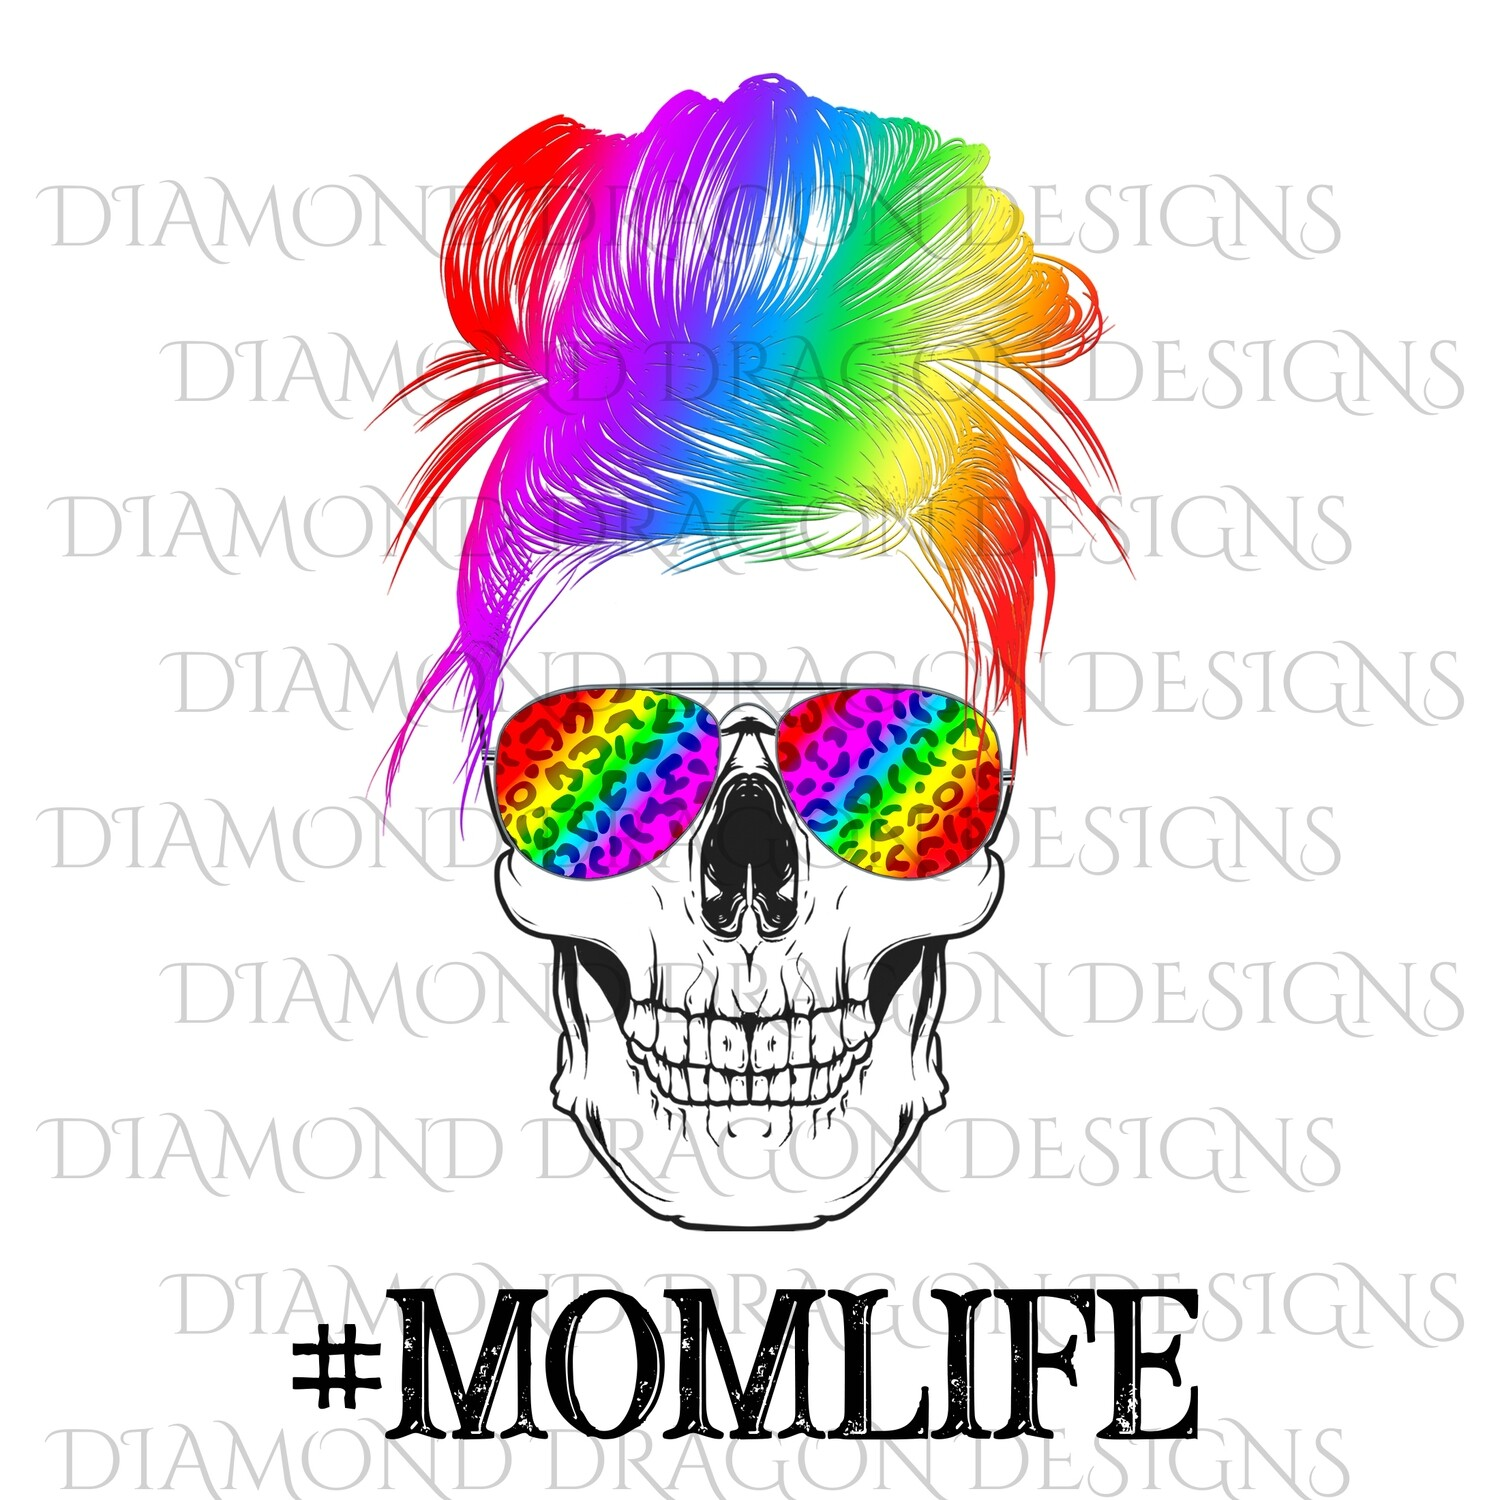 Skulls - Mom Life, #momlife, Skull, Messy Bun, Sunglasses, Rainbow Leopard Print, Mom Skull, Waterslide